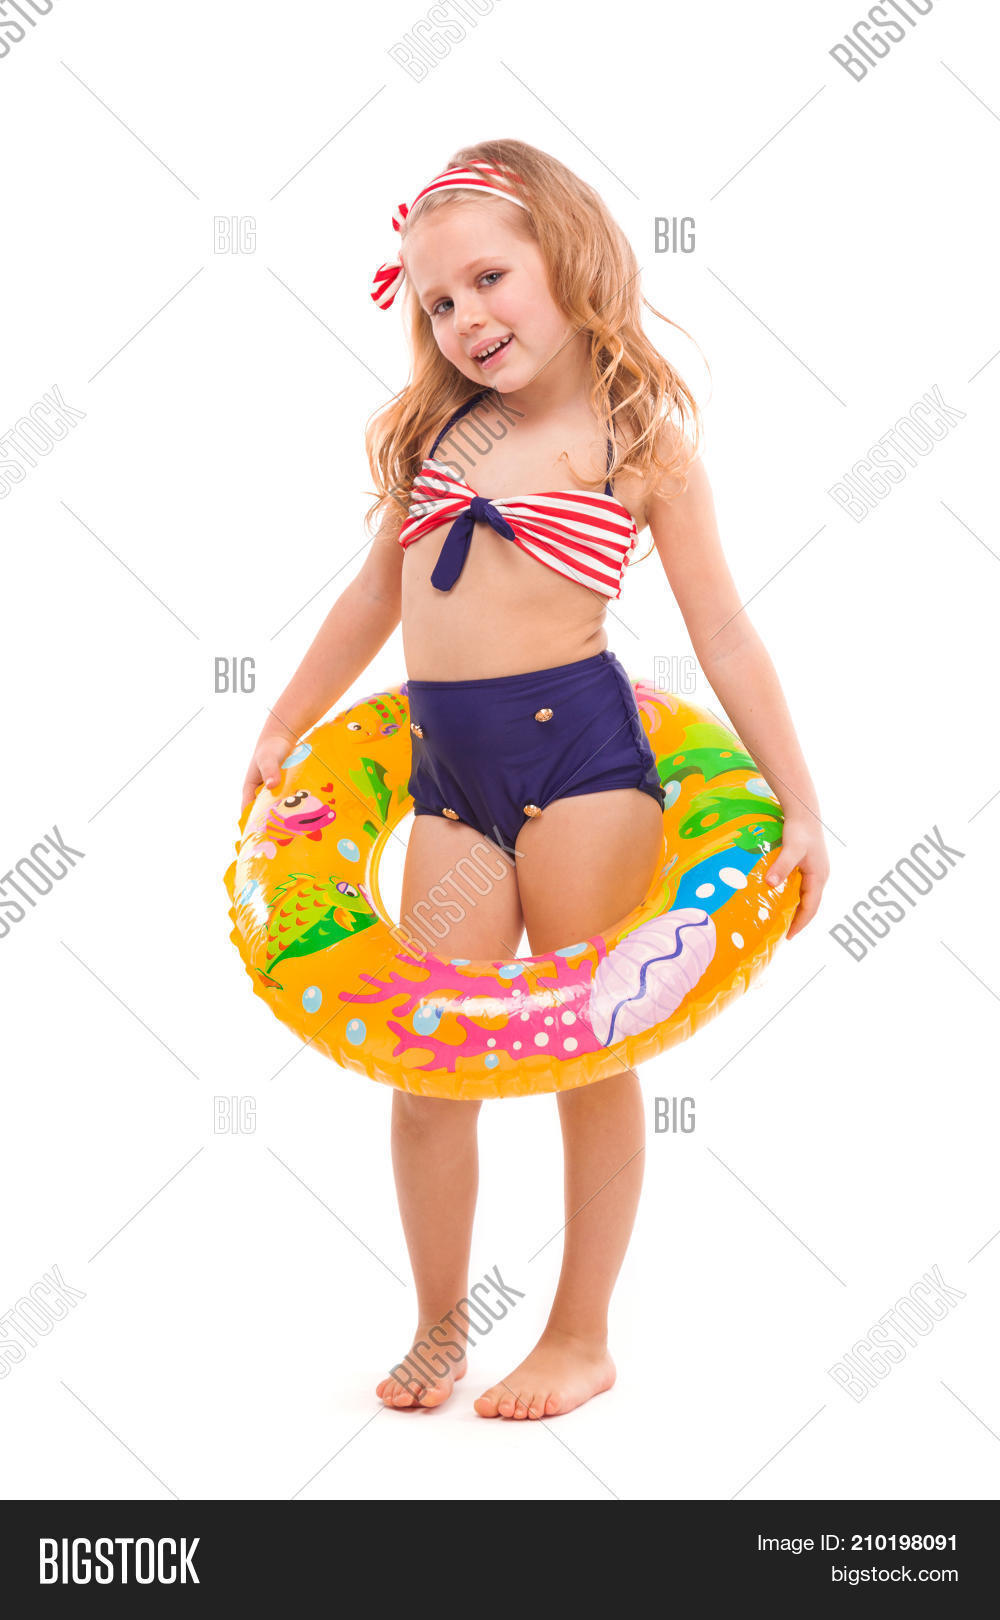 8f5e1fea6e91a Isolated on white beautiful little caucasian blonde girl in red striped  bikini blue bottoms and pink flower wreath hold rubber ring on the waist  look at ...